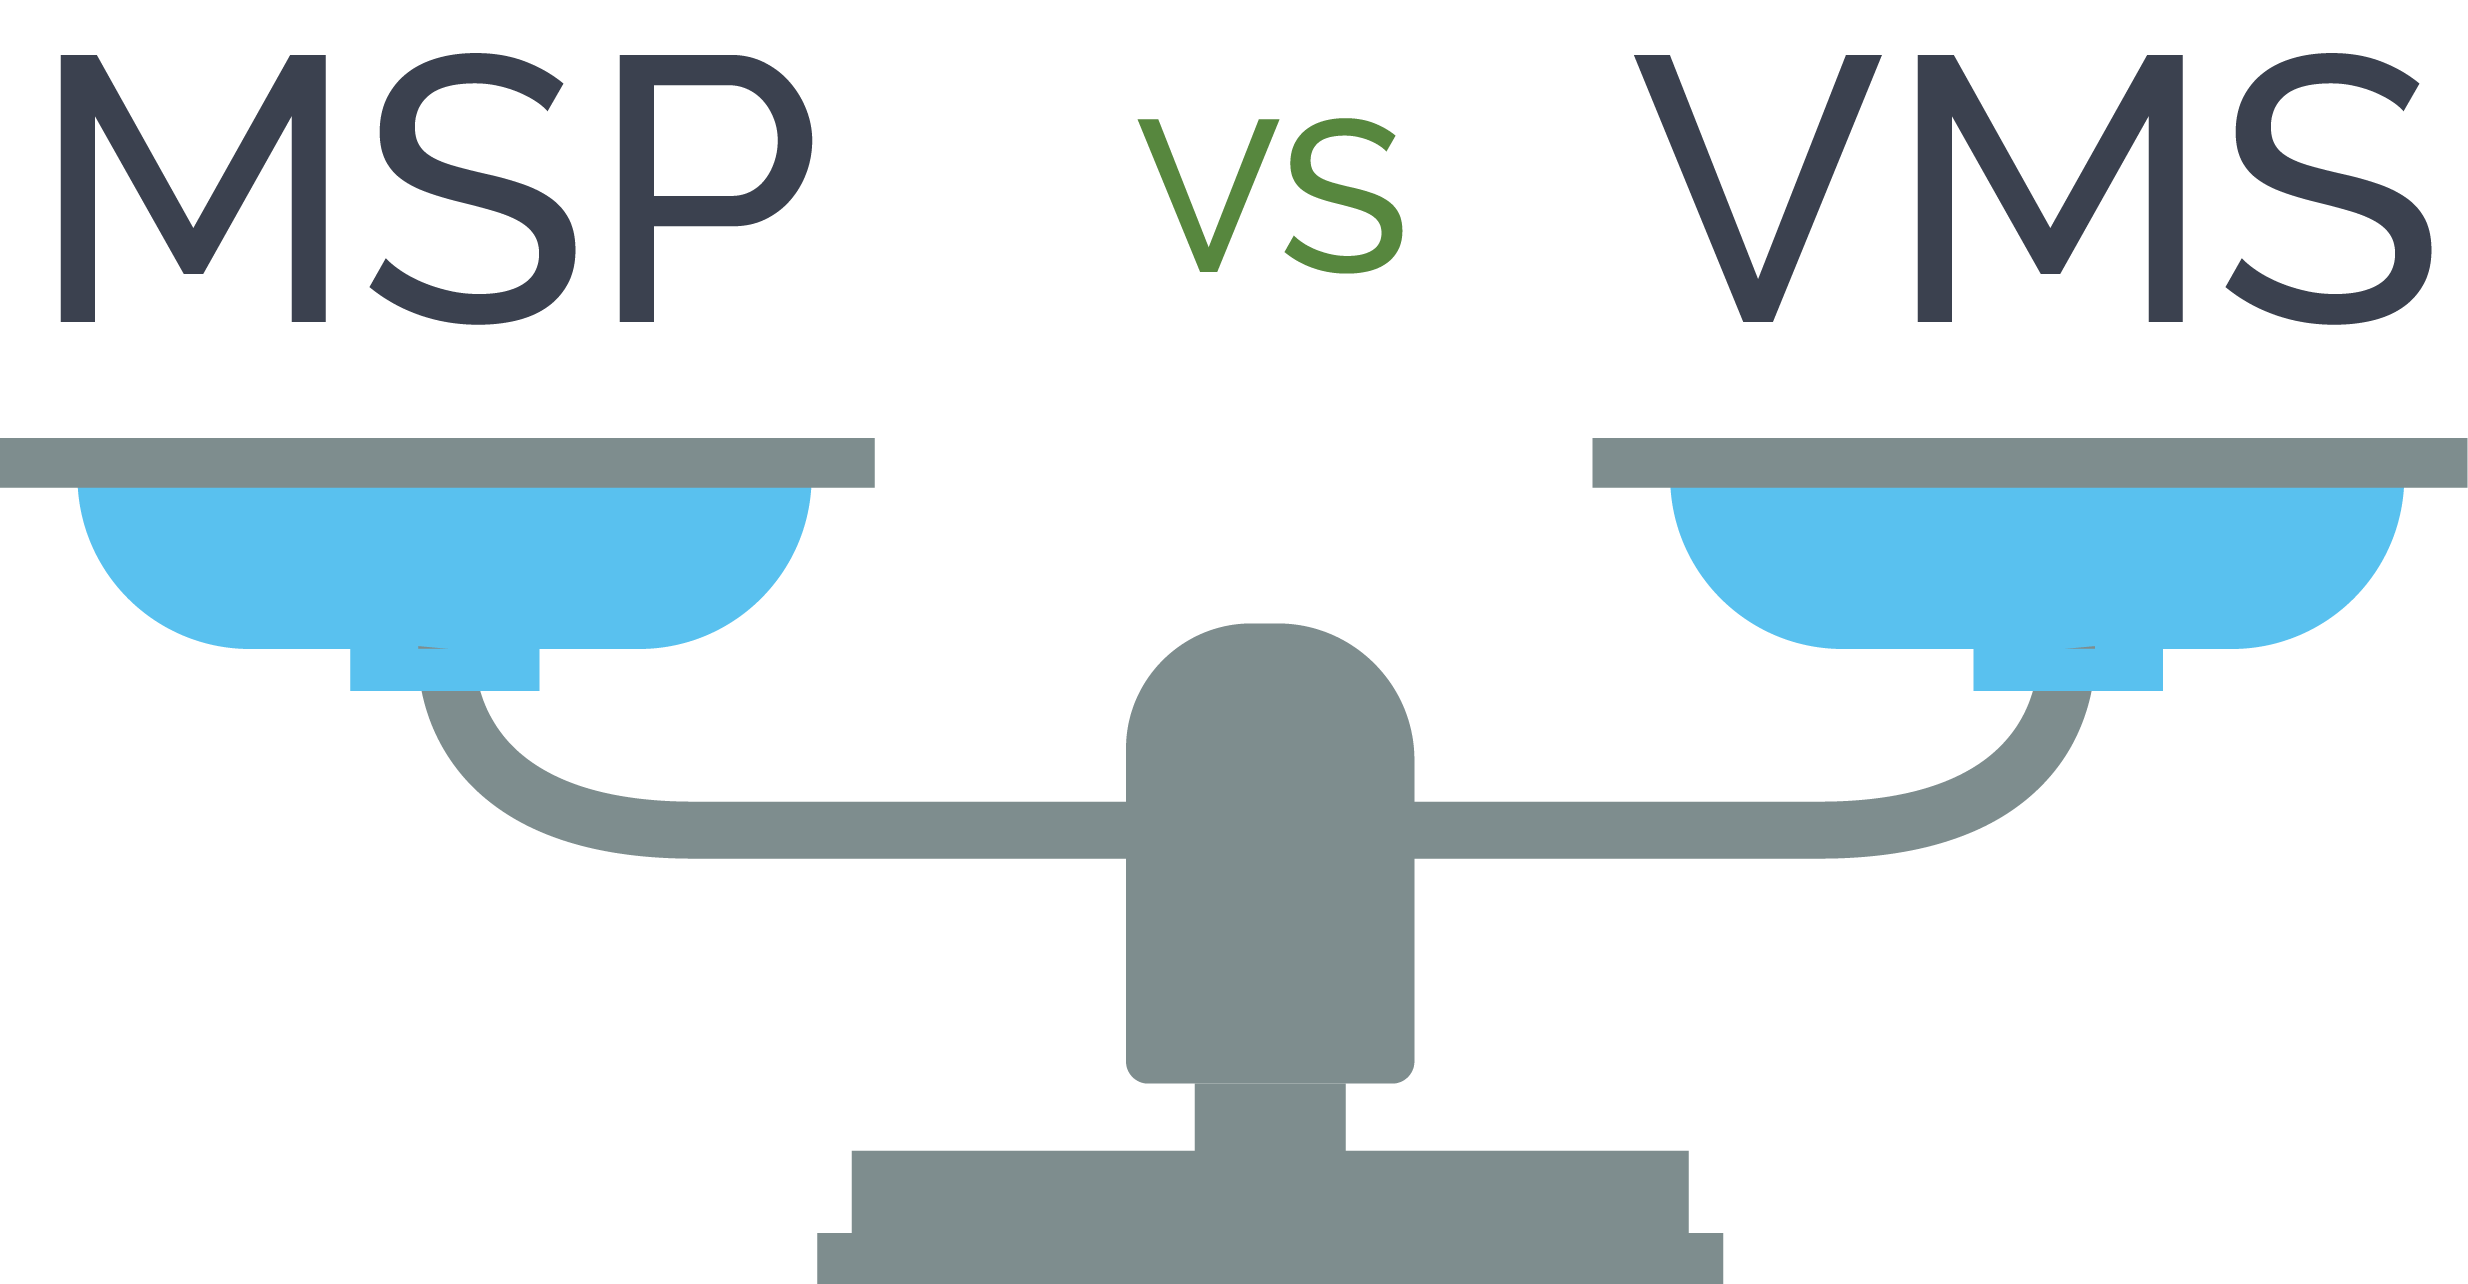 MSP vs. VMS: How Are They Different?